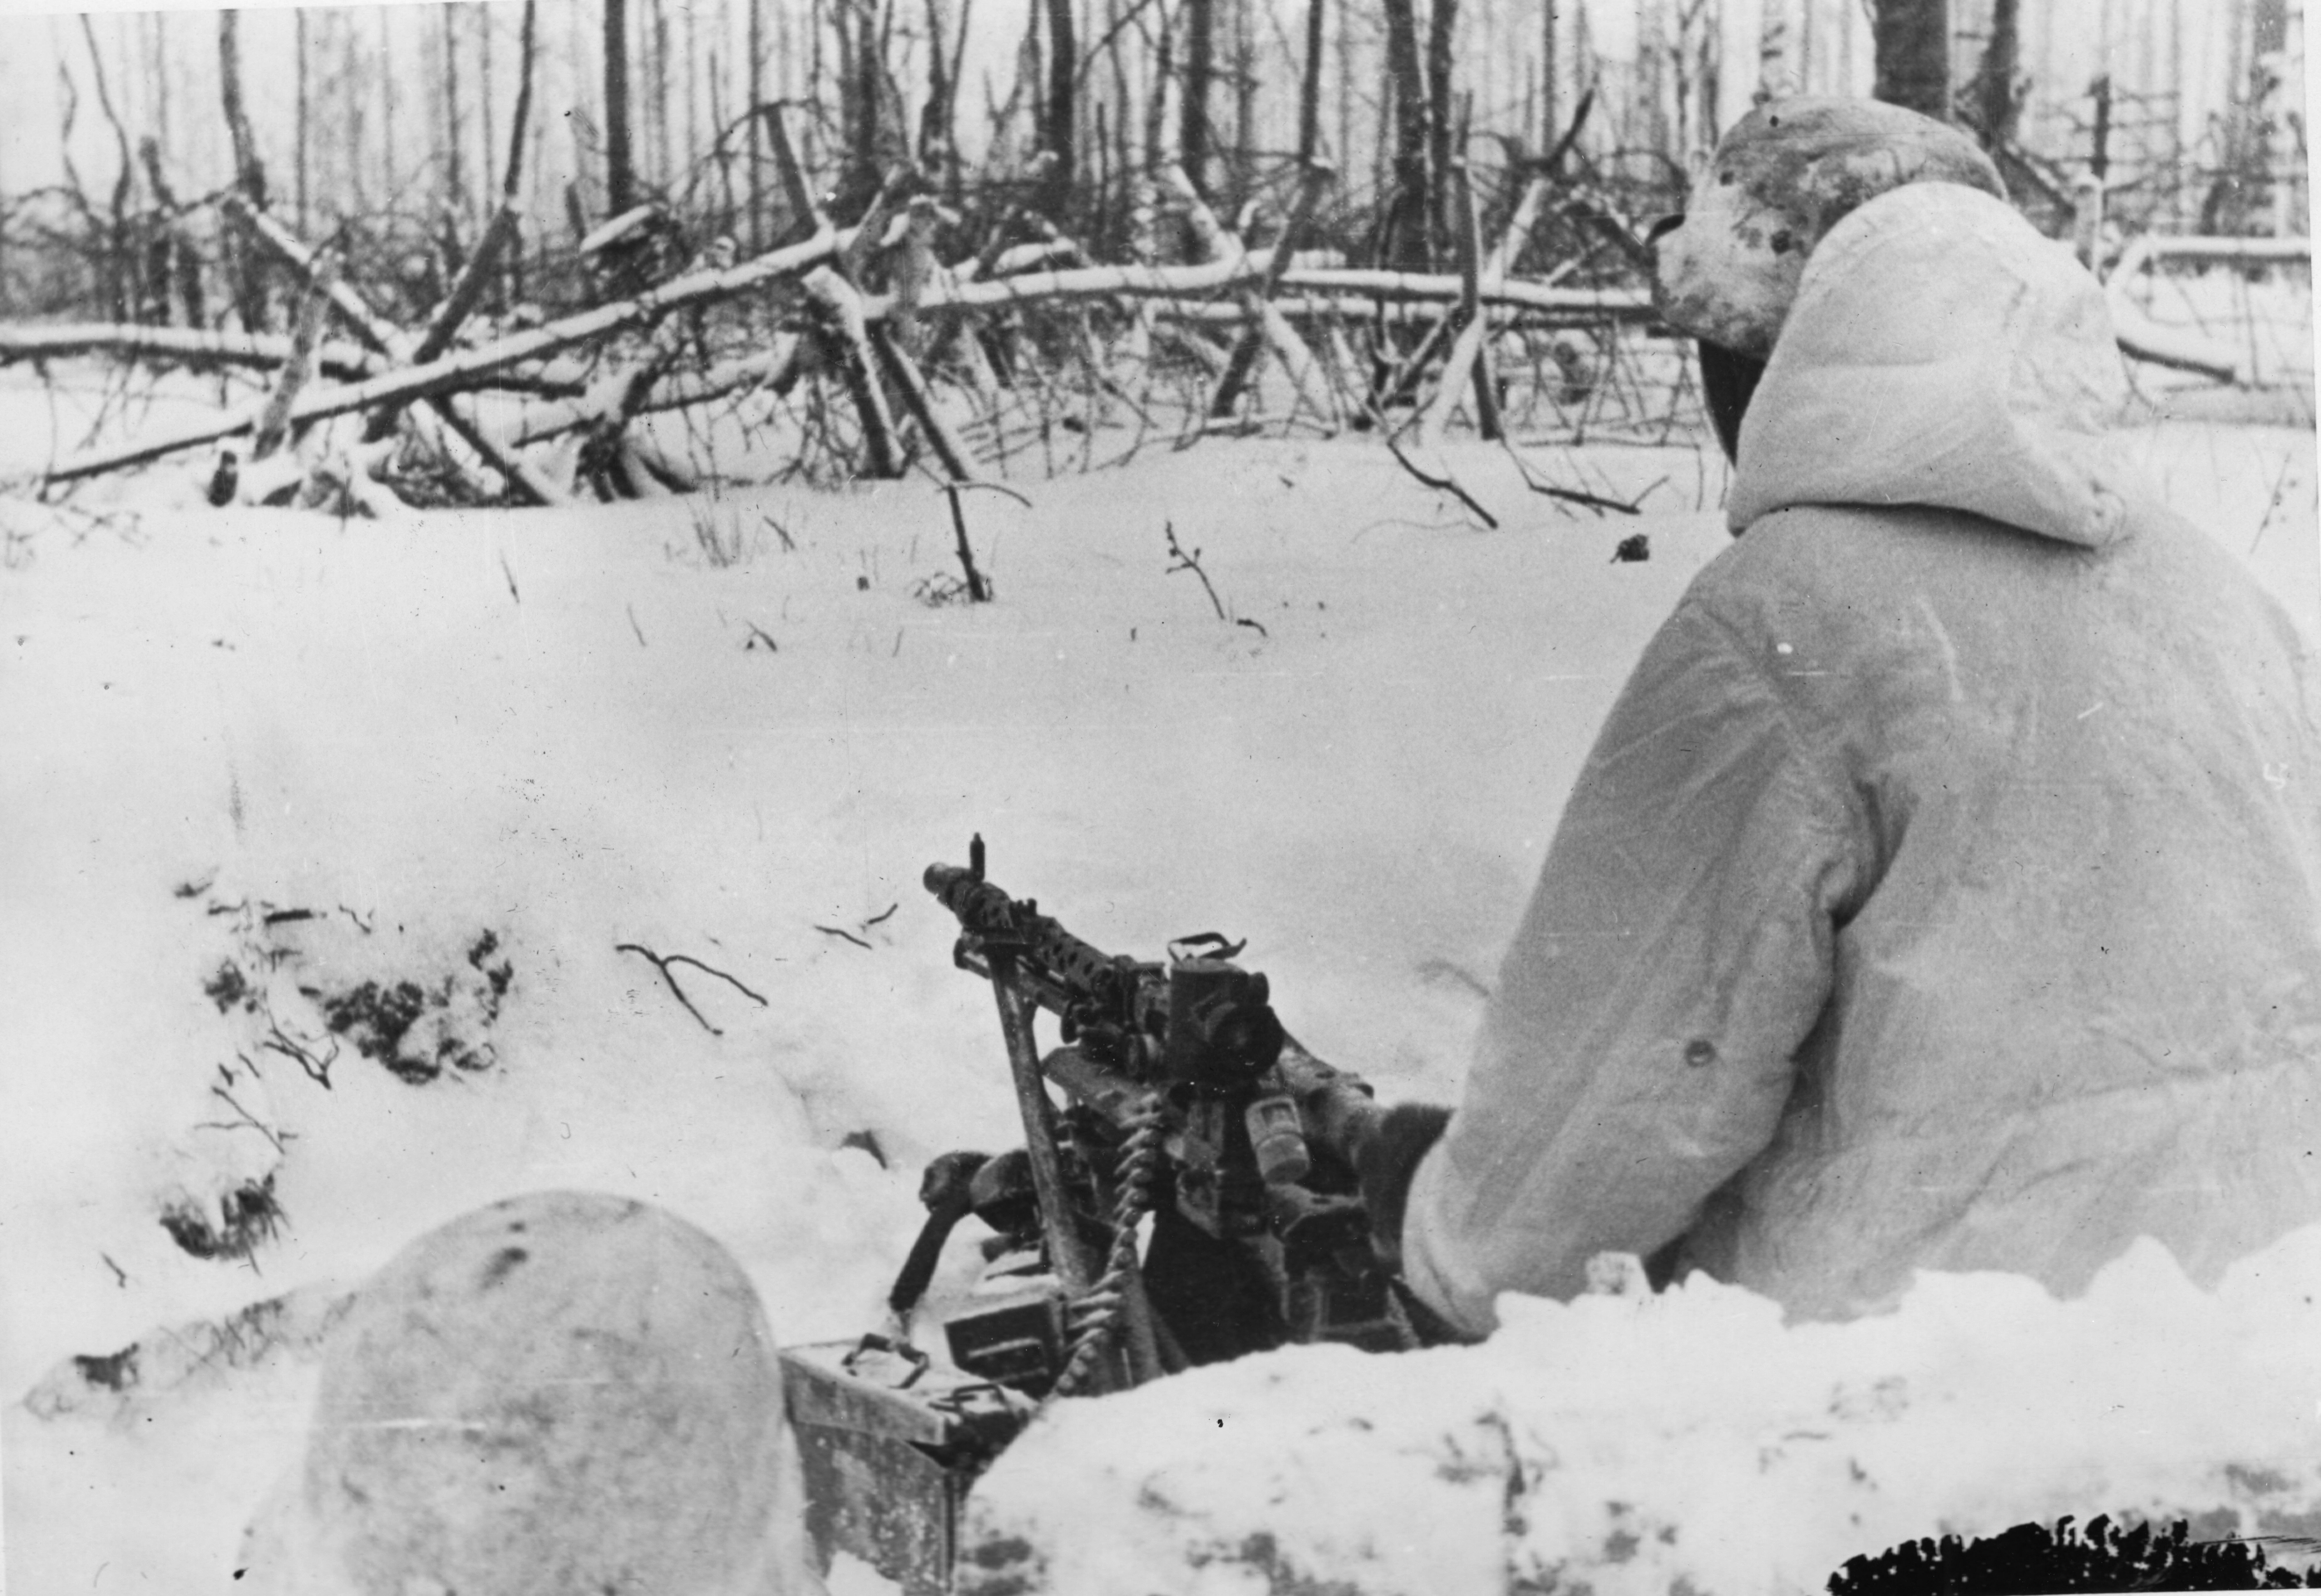 Manning an MG 34 mounted